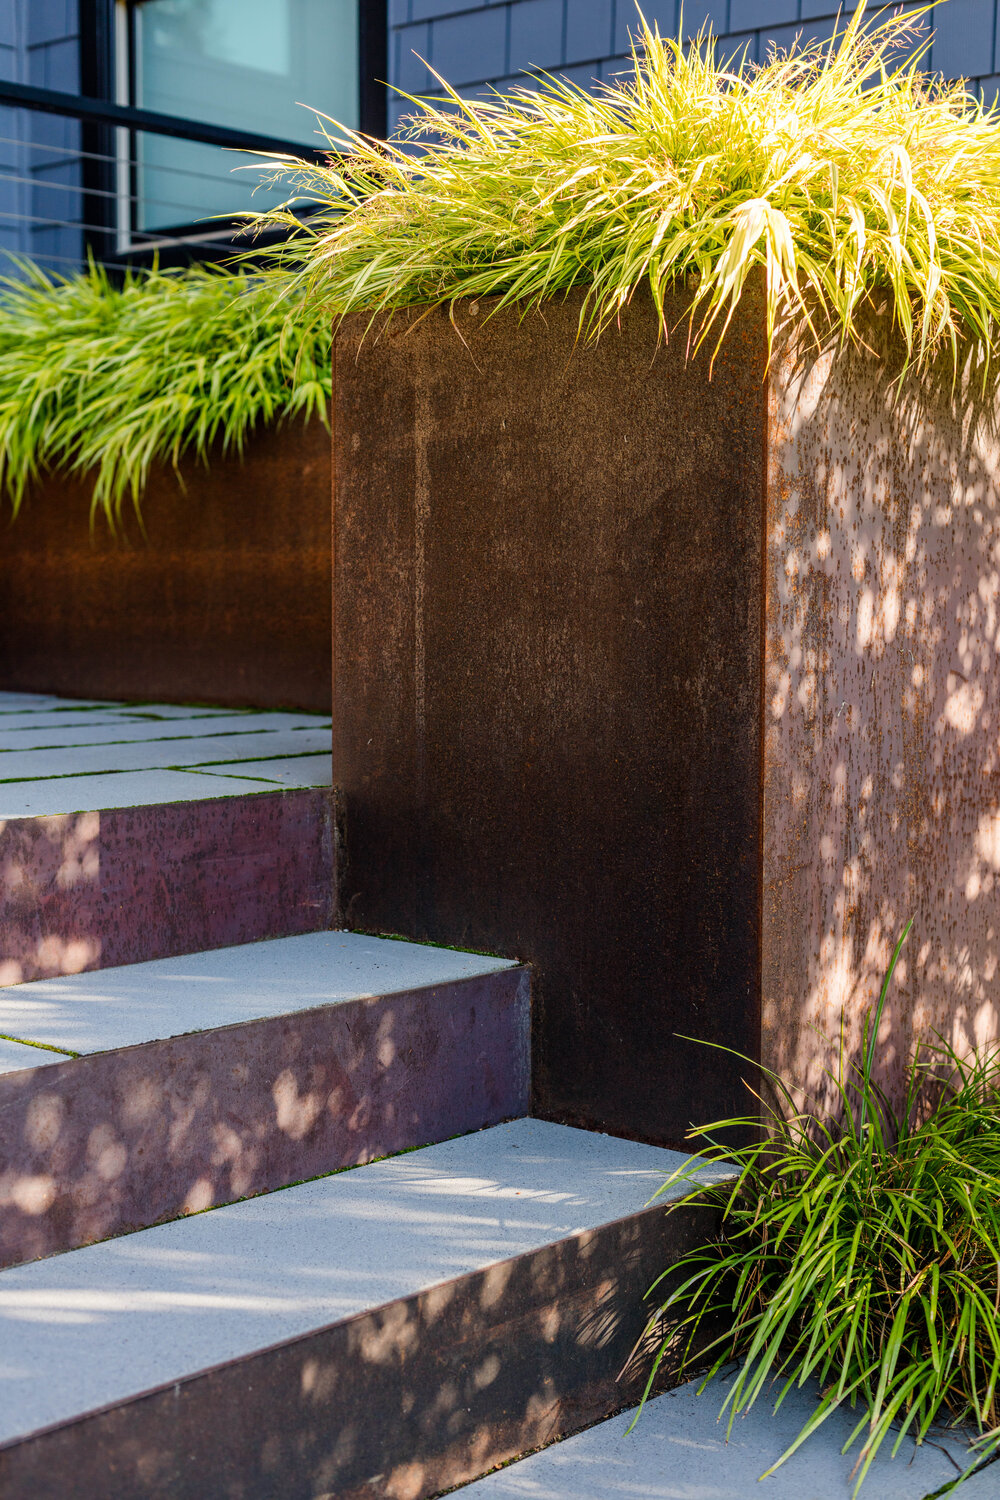 Steel and concrete steps welcome you inoto the lovely home and series of patios around it